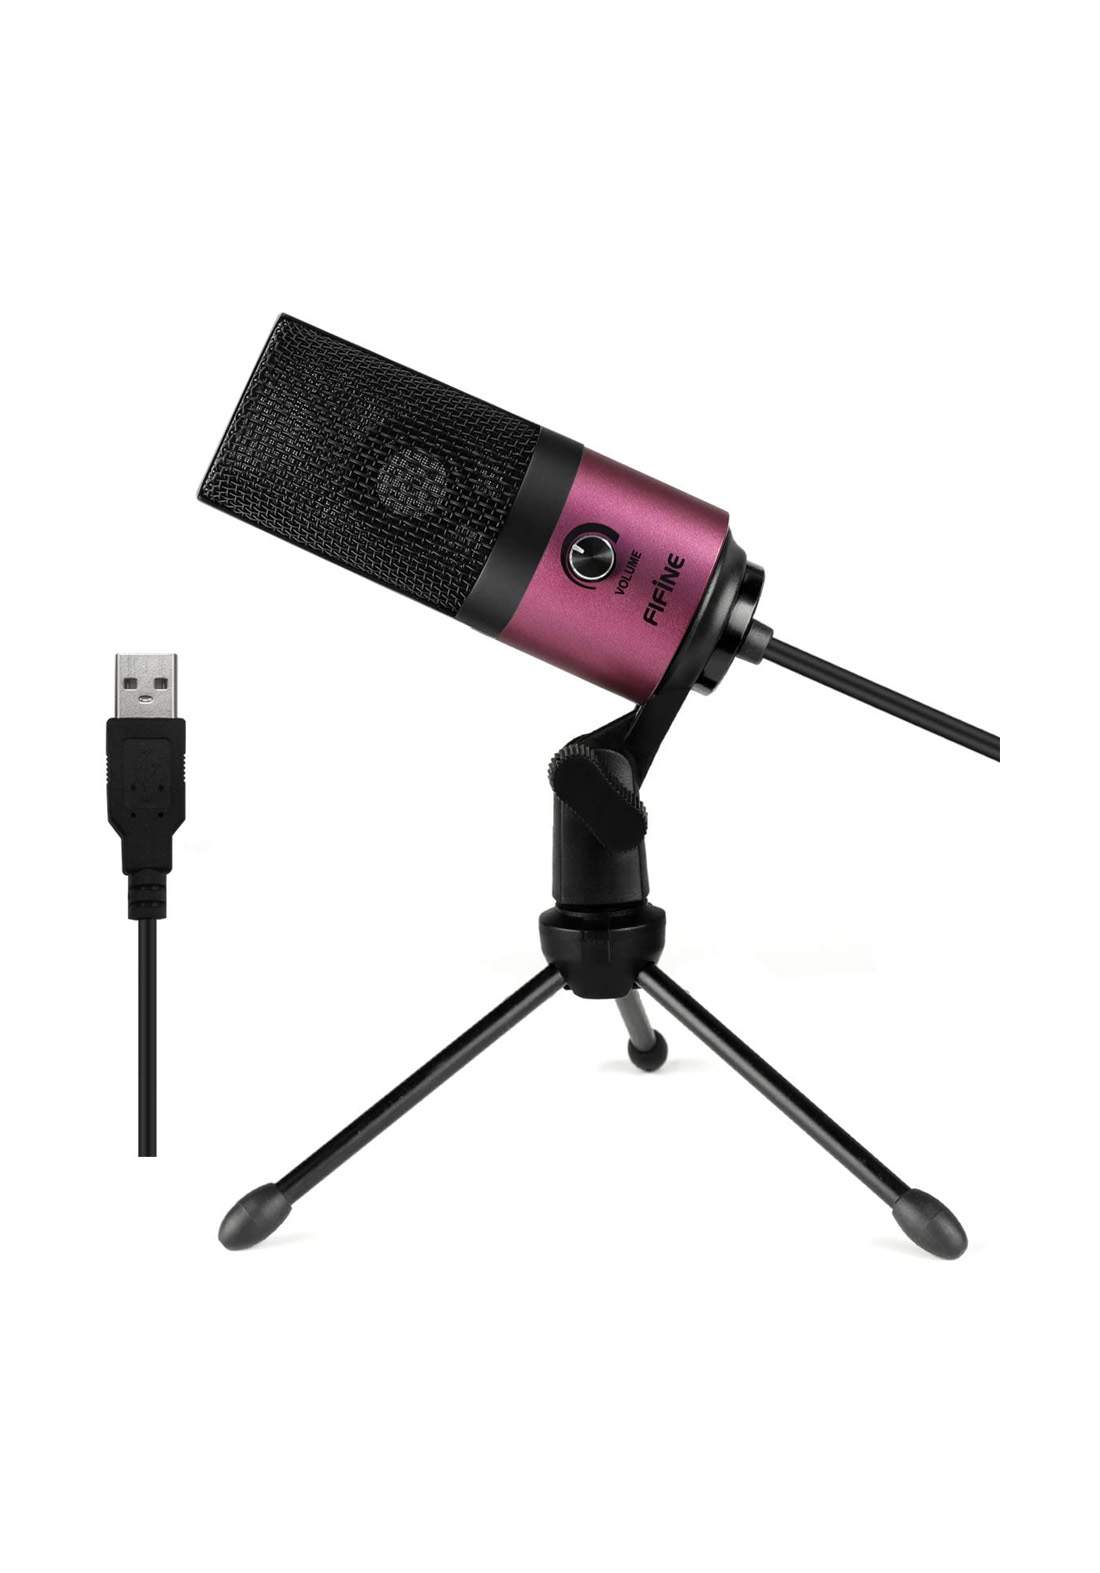 Fifine K669 USB Wired Microphone with Recording Function for PC Laptop - Pink مايكروفون